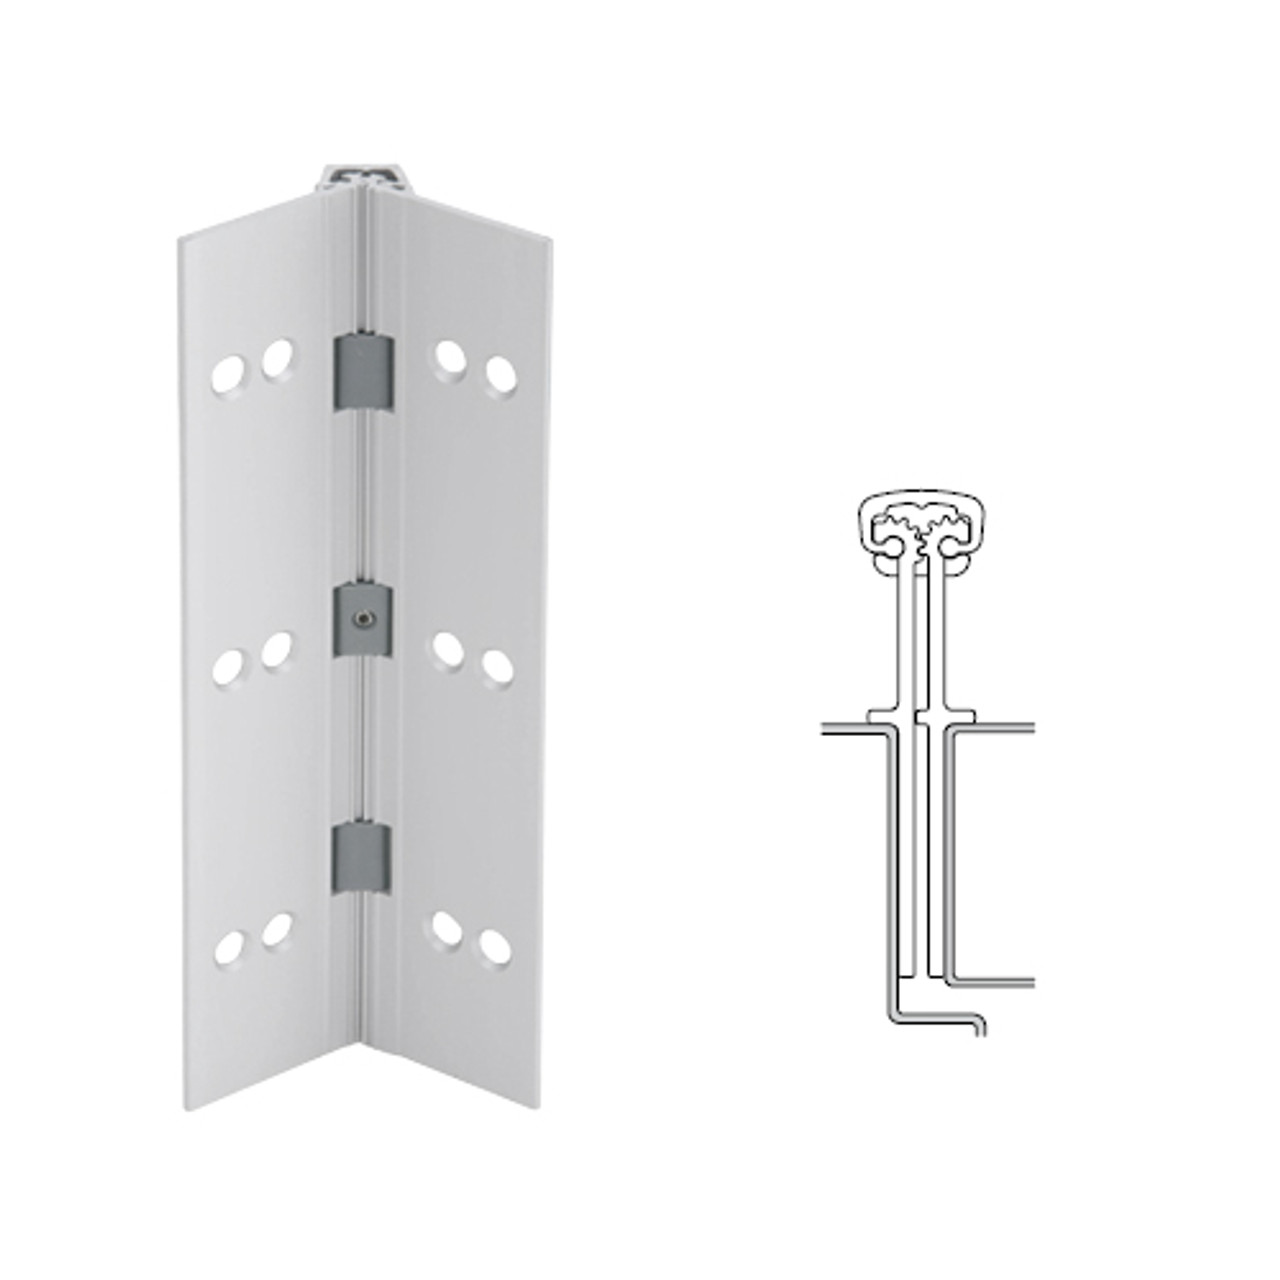 040XY-US28-83-HT IVES Full Mortise Continuous Geared Hinges with Hospital Tip in Satin Aluminum